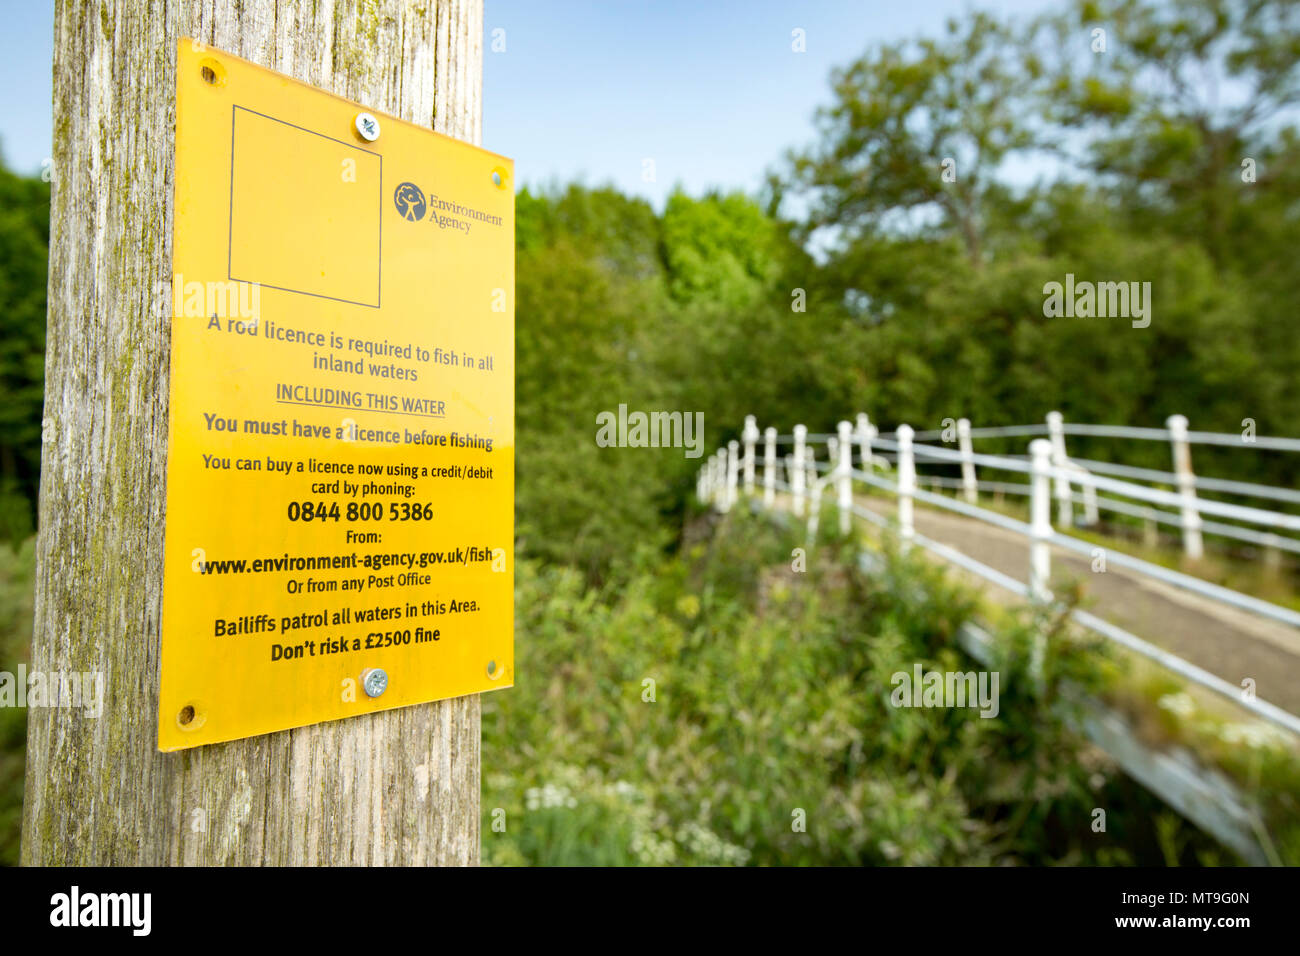 An Environment Agency sign warning anglers that they need to purchase a rod licence to fish in inland waters in the UK or face a fine if caught withou - Stock Image